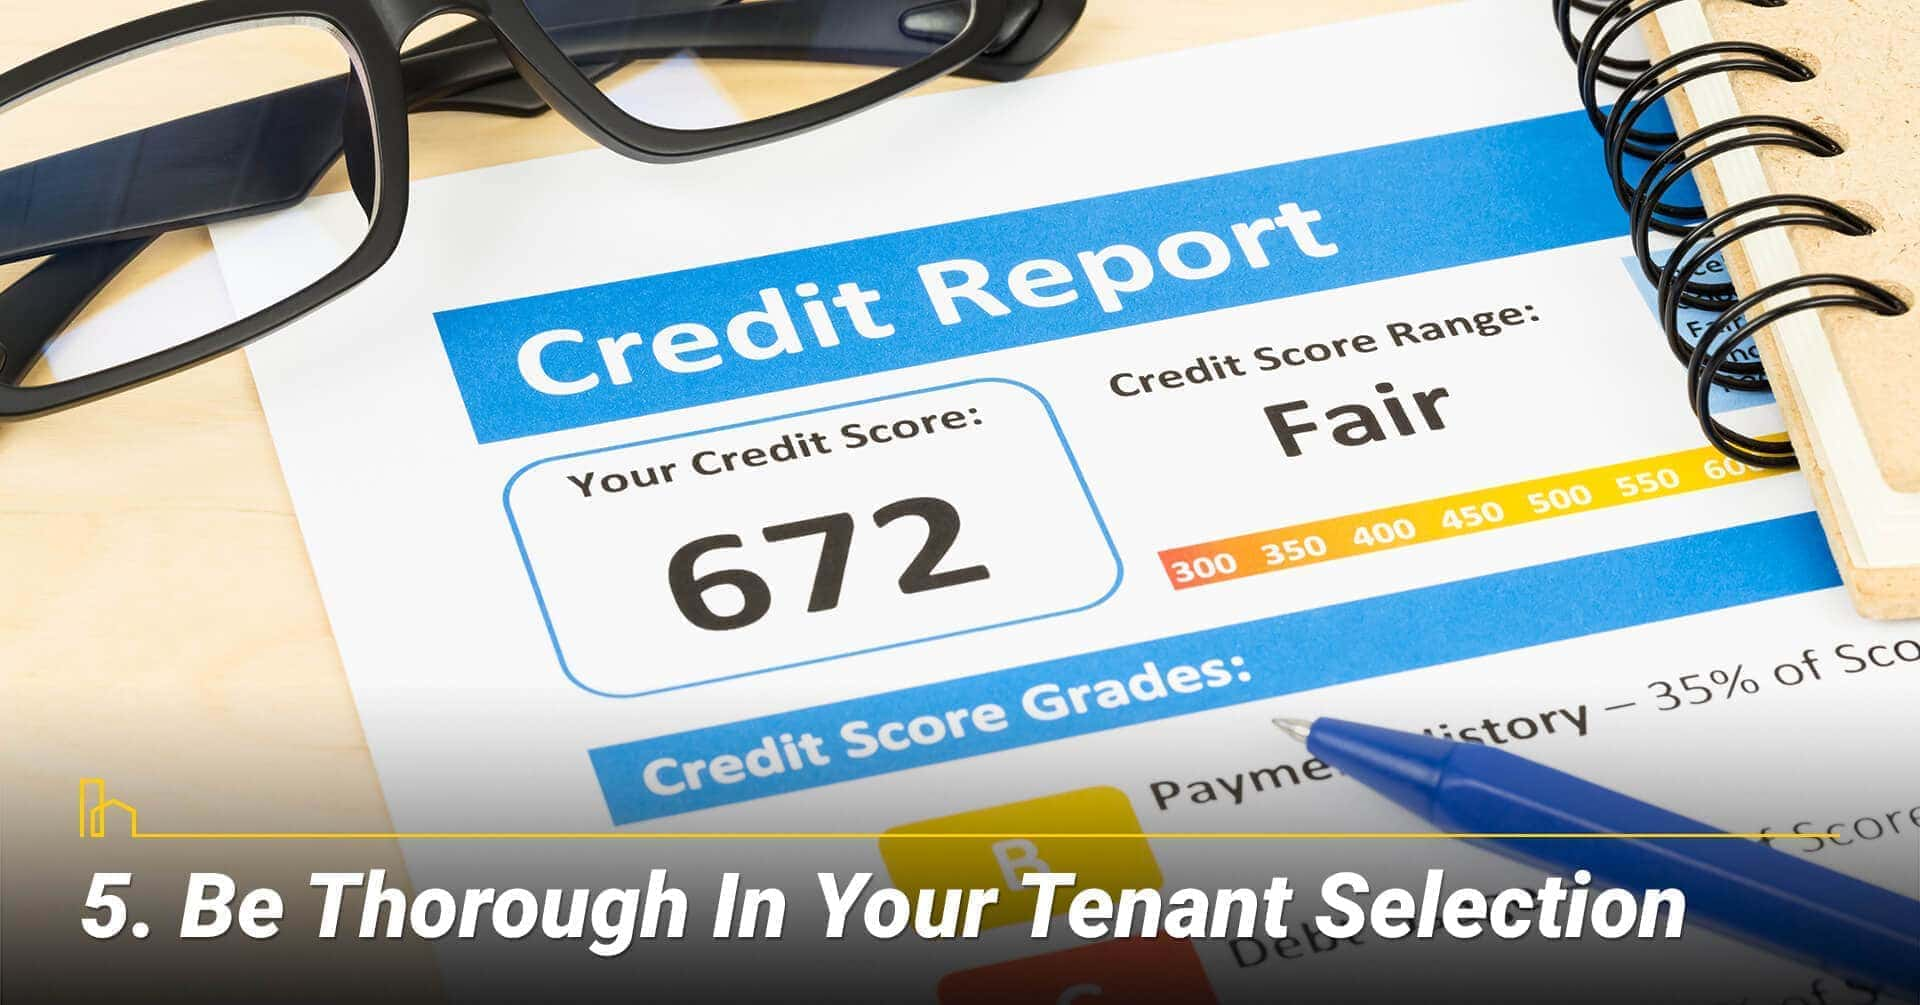 Be Thorough In Your Tenant Selection, select your tenant carefully